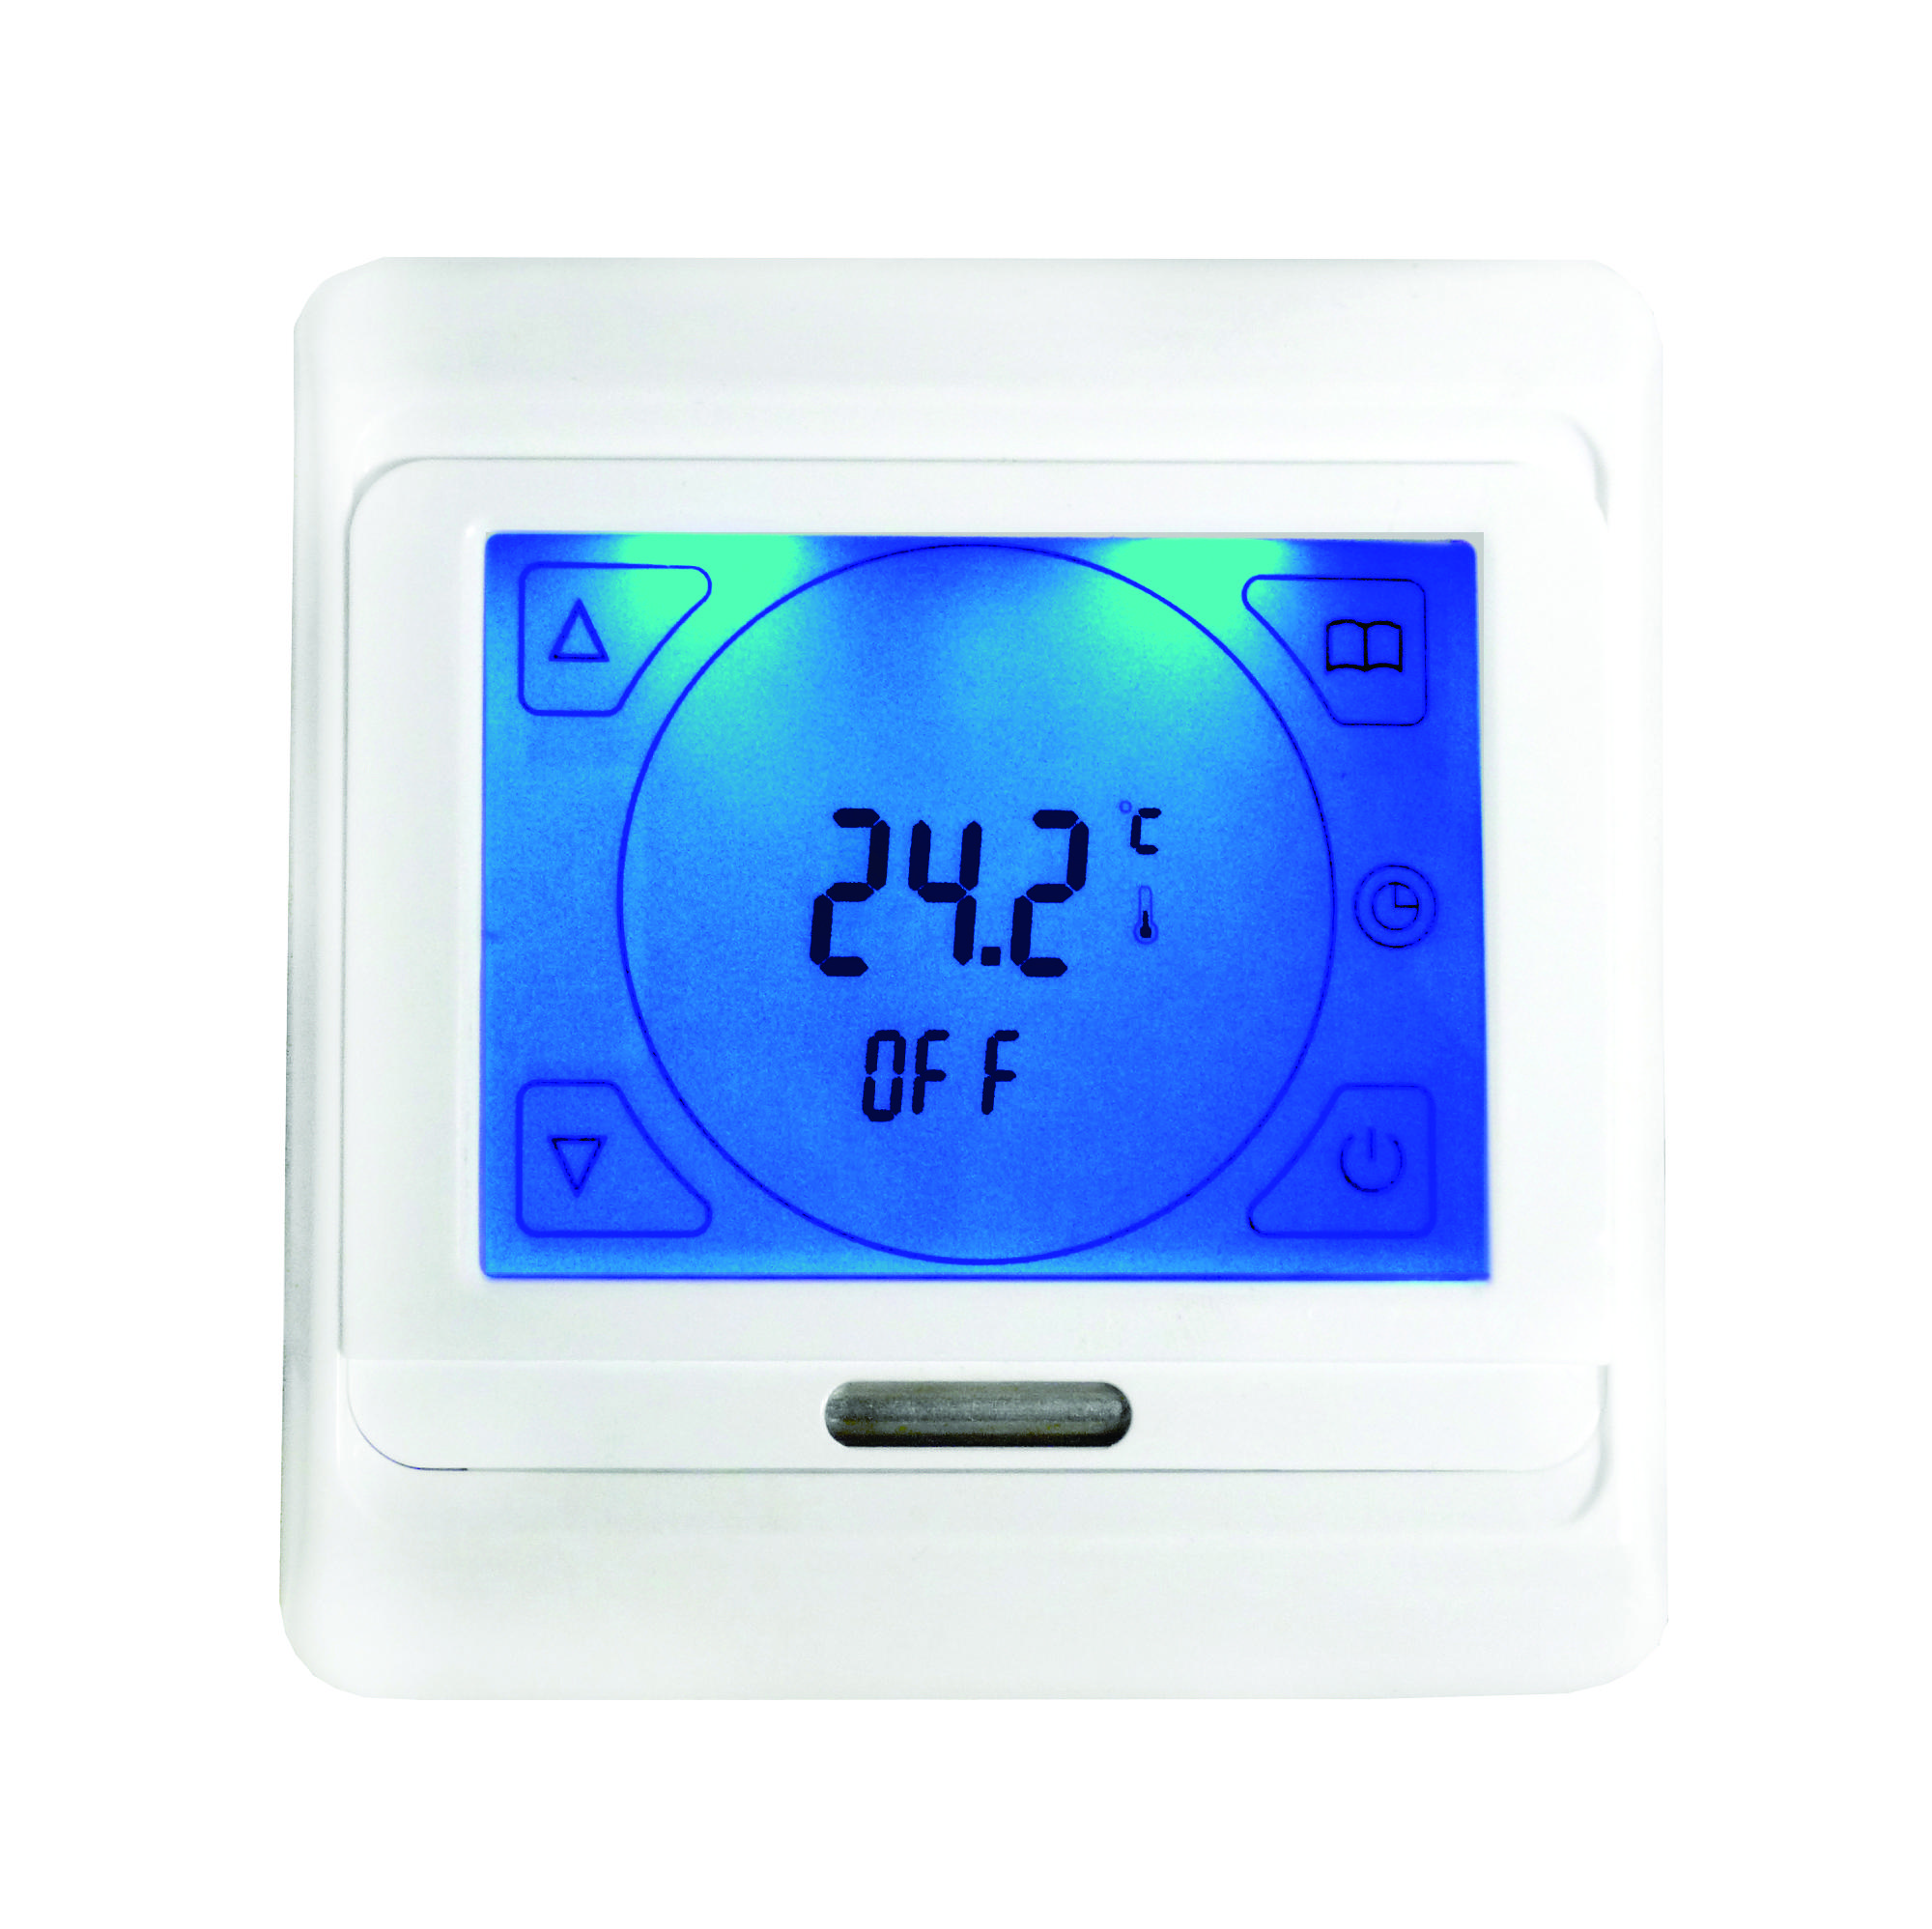 Sunstone Touchscreen Thermostat at Trade Monkey